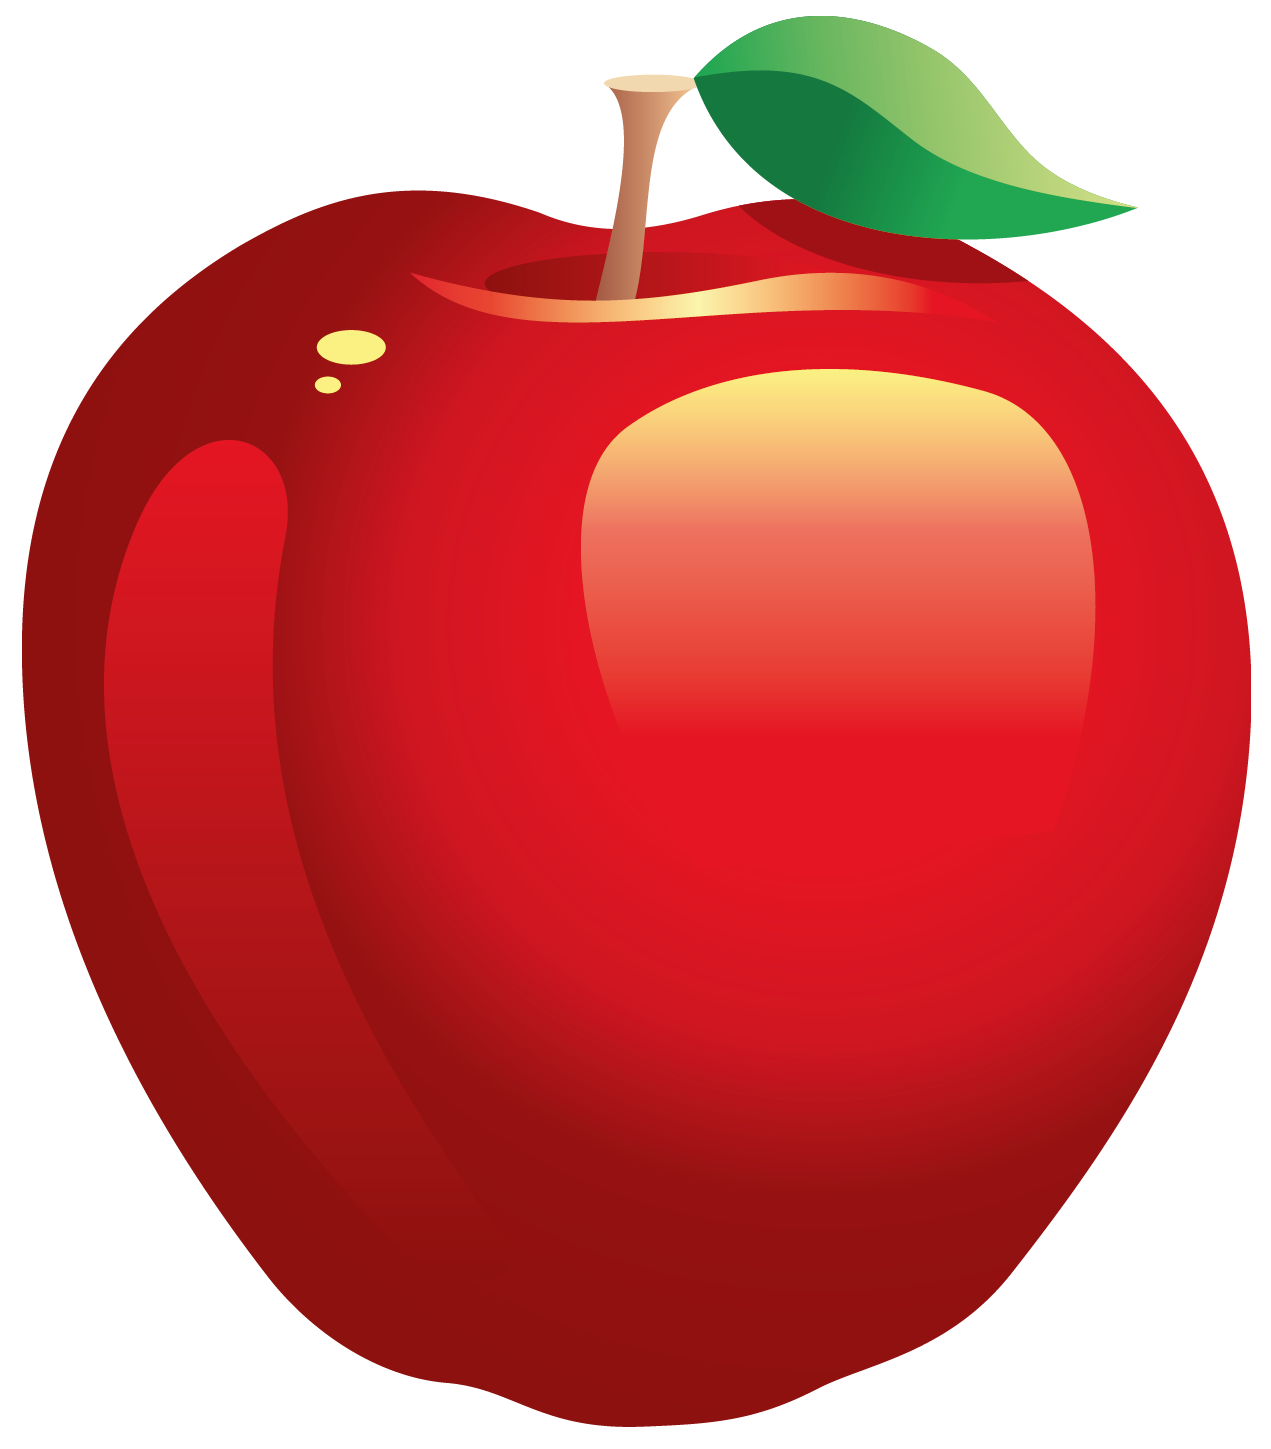 Apple clipart png. Large painted red gallery